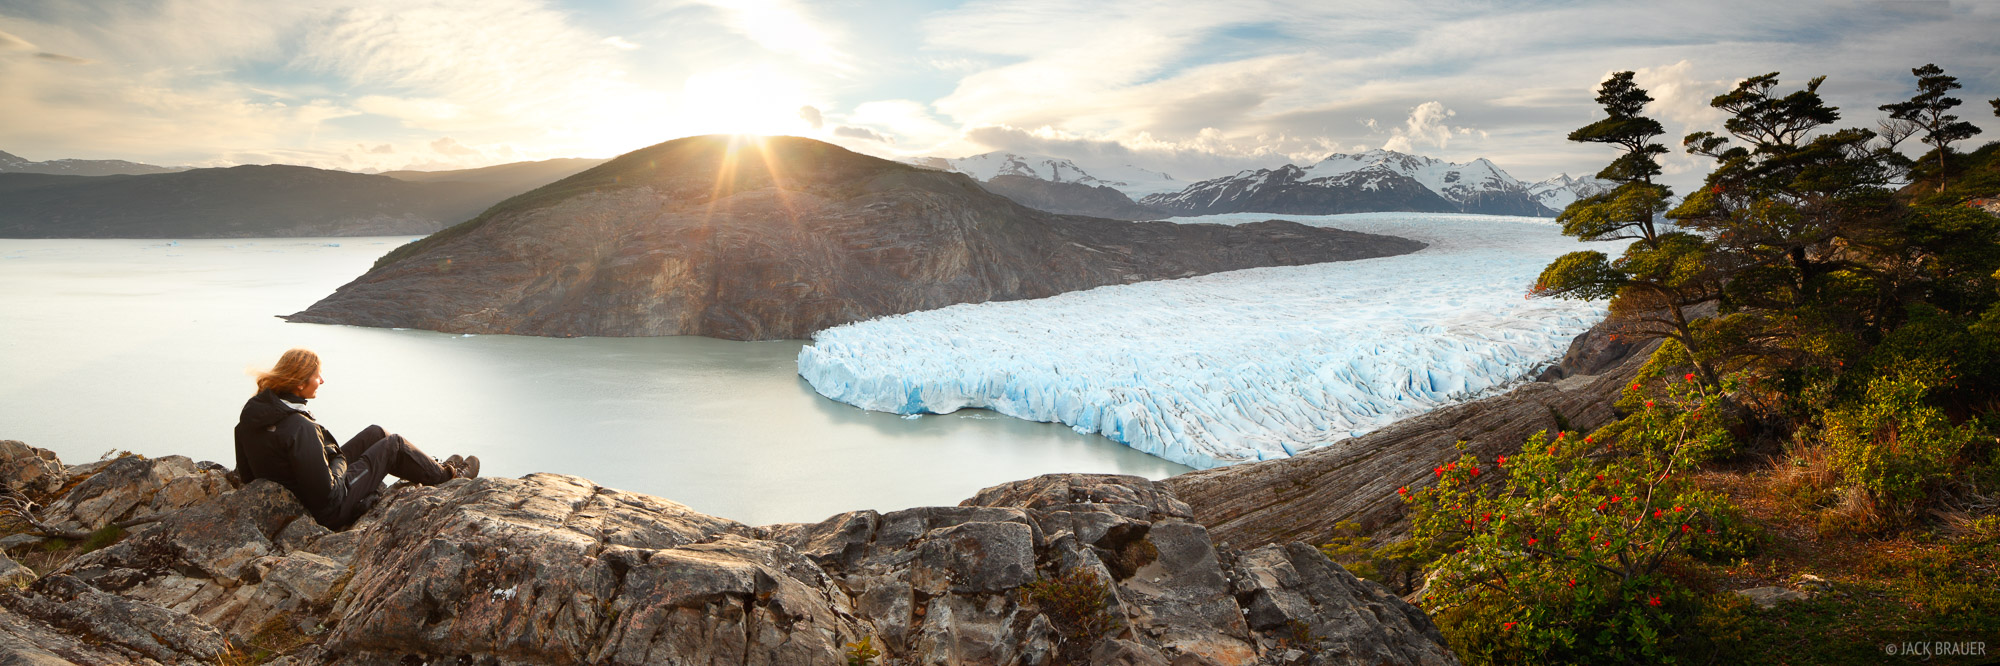 Glaciar Grey, Torres del Paine, Chile, panorama, sunset